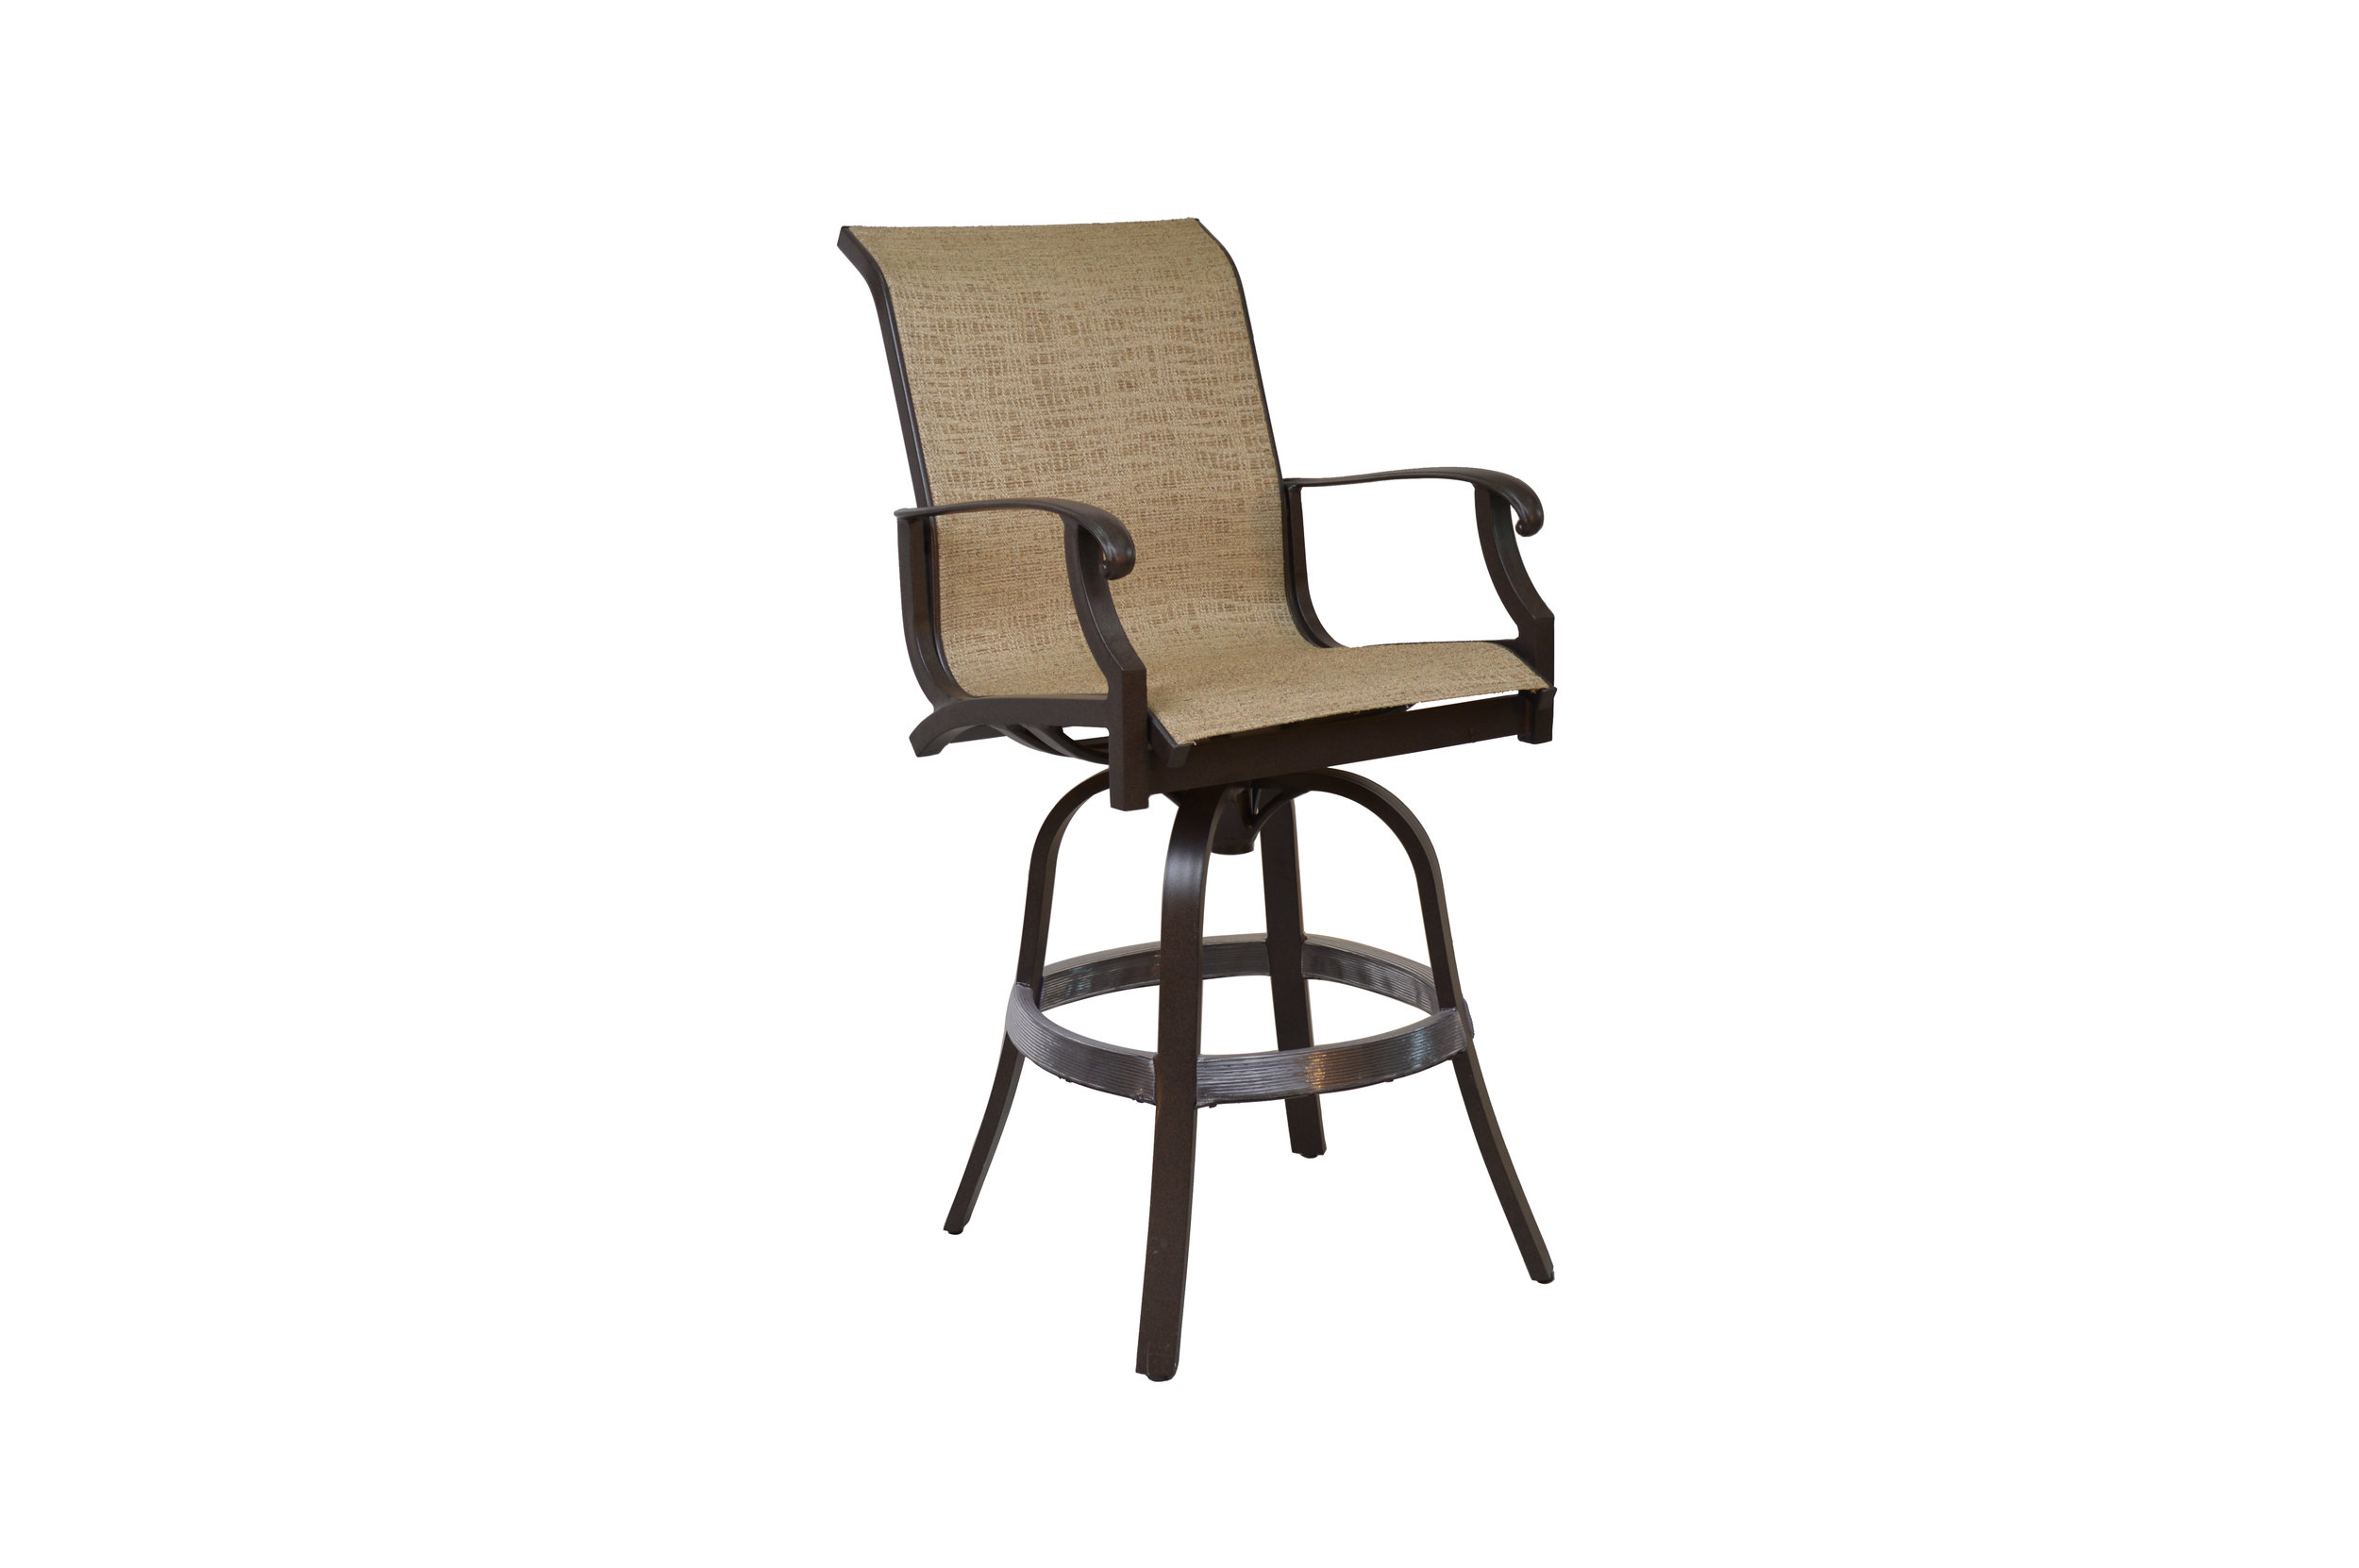 602308 Laguna Swivel Bar Chair   24 x 29.4 x 48.8